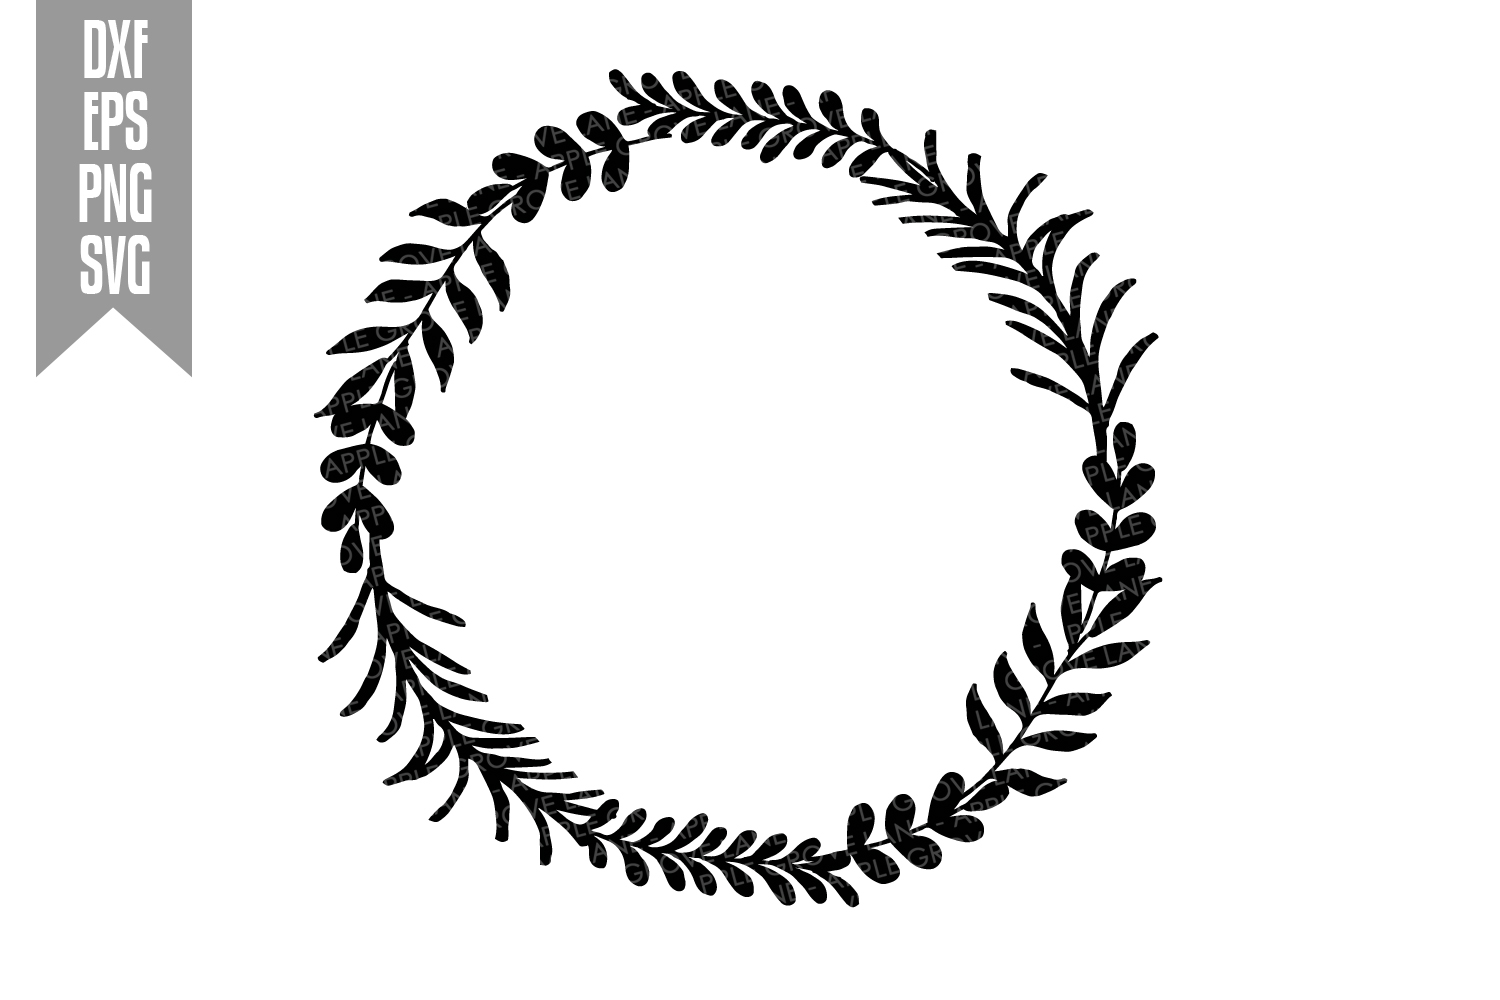 Wreath Svg Bundle - 6 designs included - Svg Cut Files example image 4